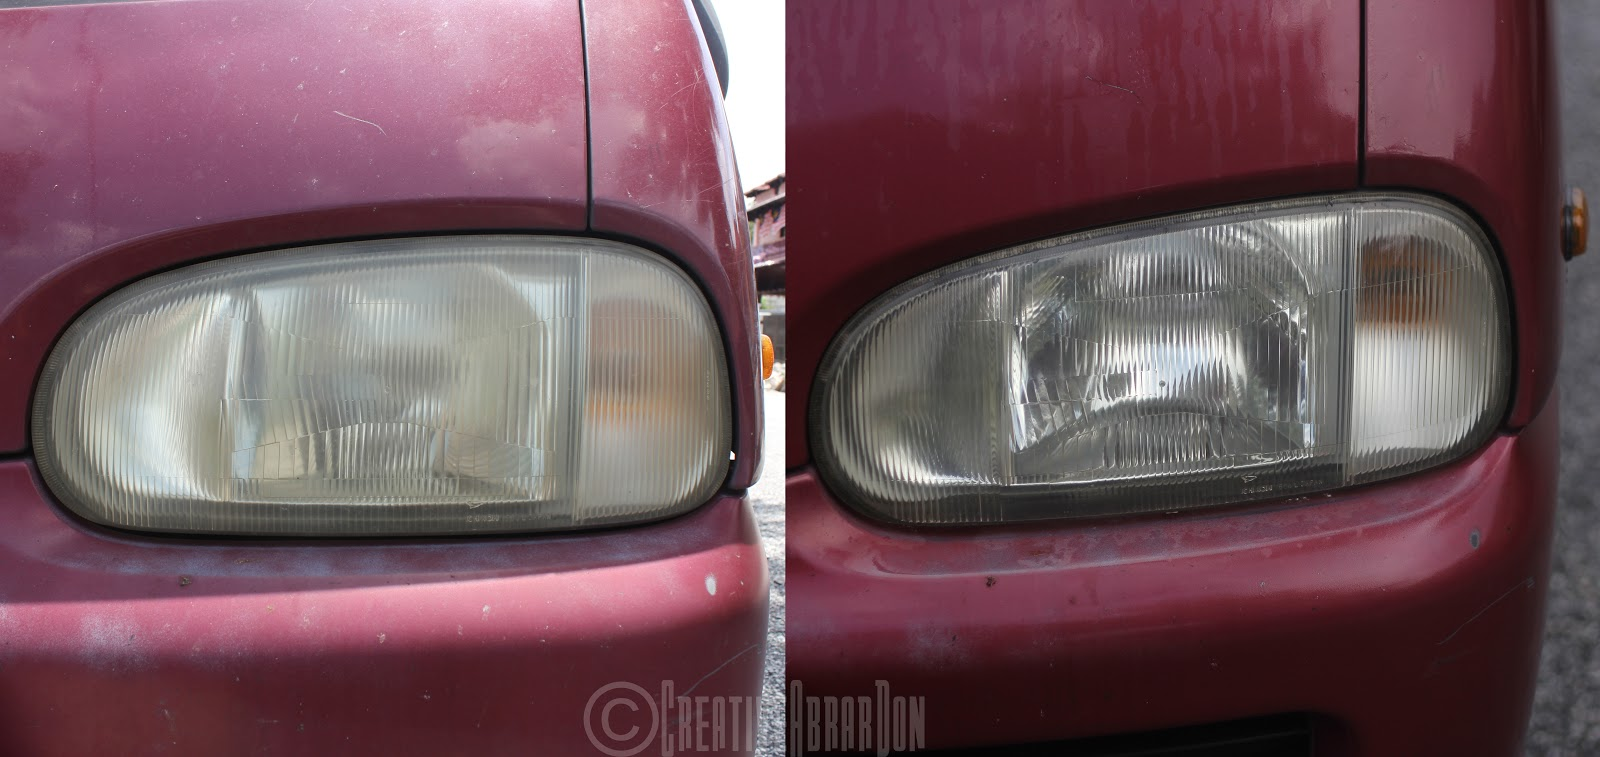 how to clean car lights